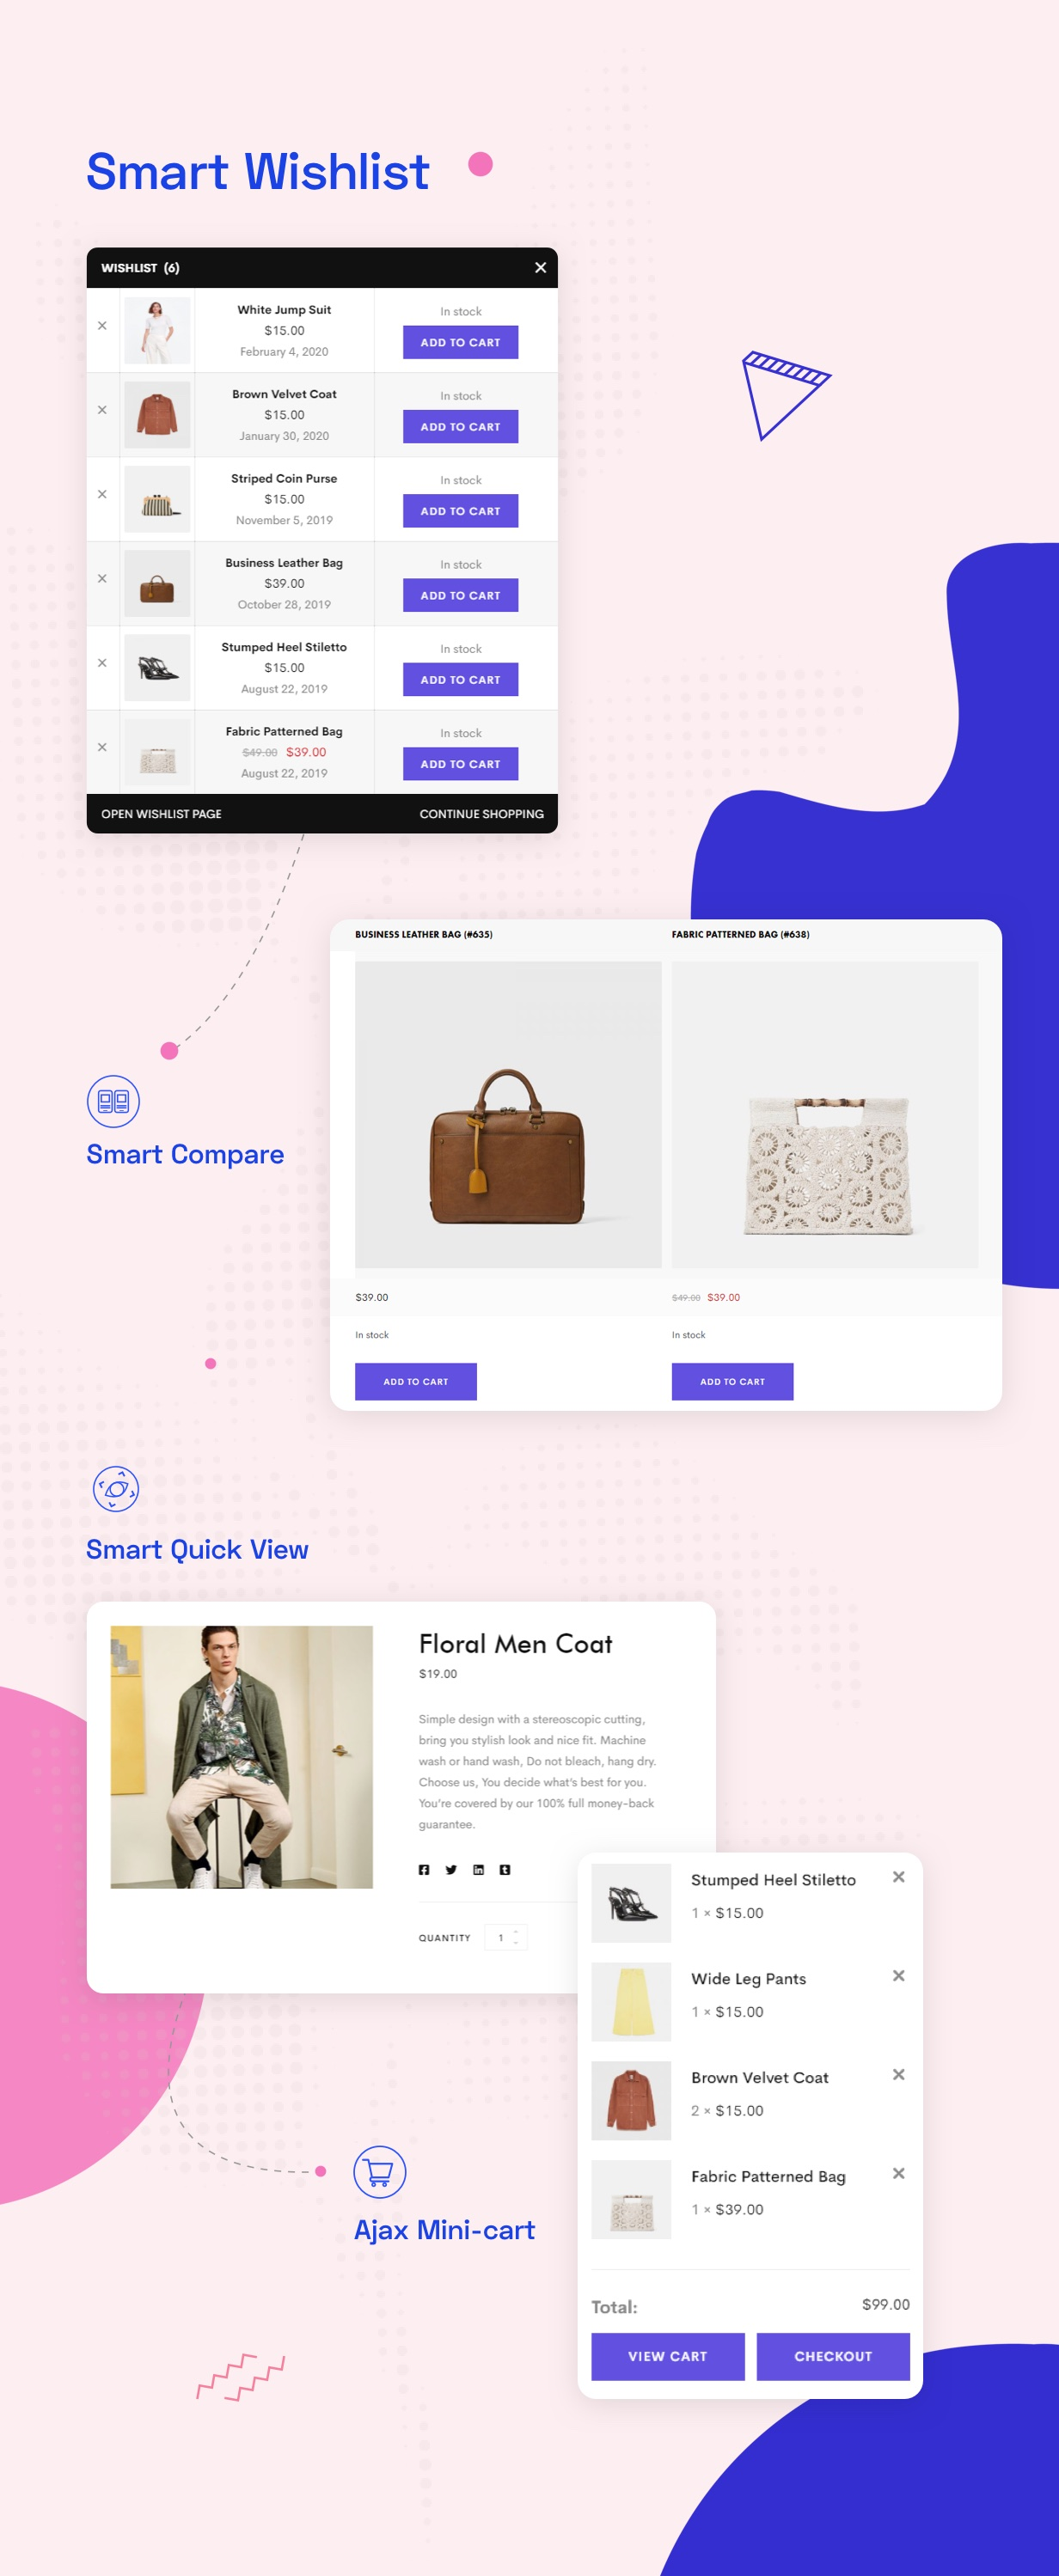 shop feature with smart wishlist, quick view, compare, ajax